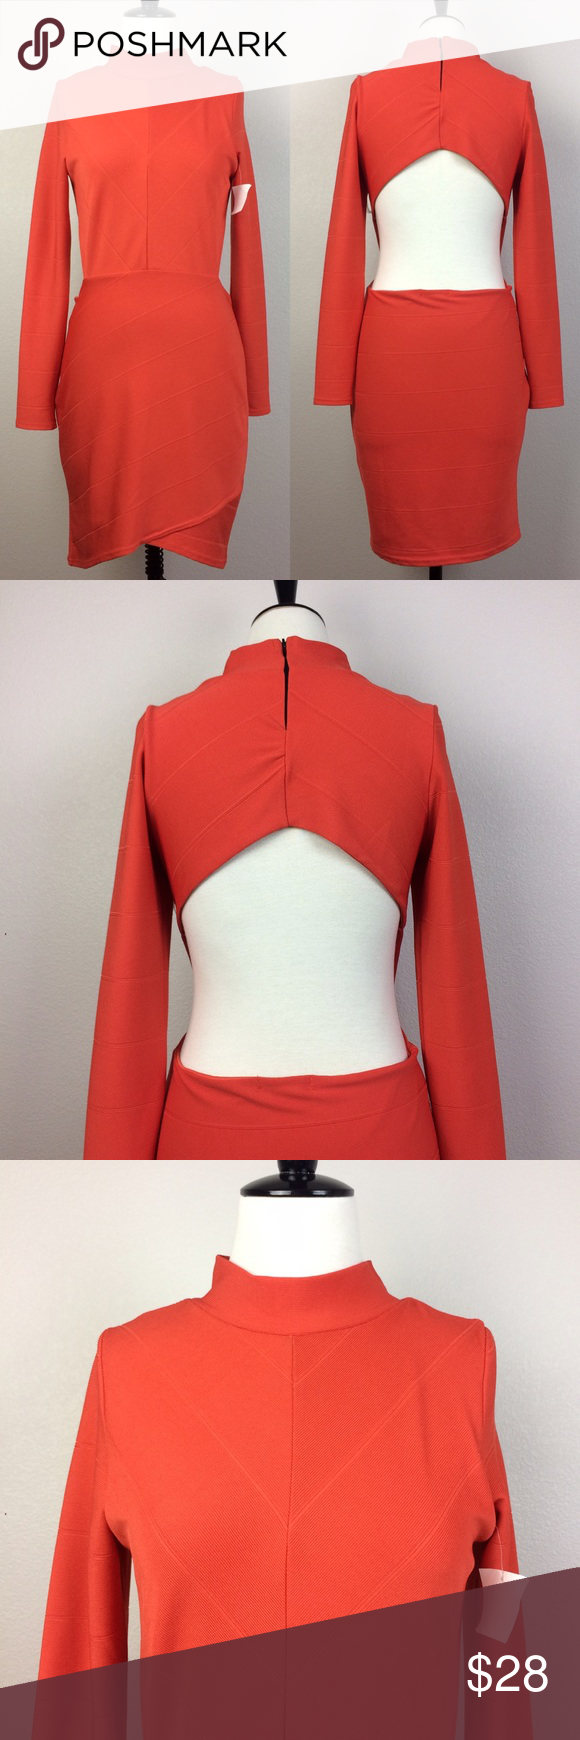 Nwt misguided red long sleeve cutout dress nwt long sleeve cutout